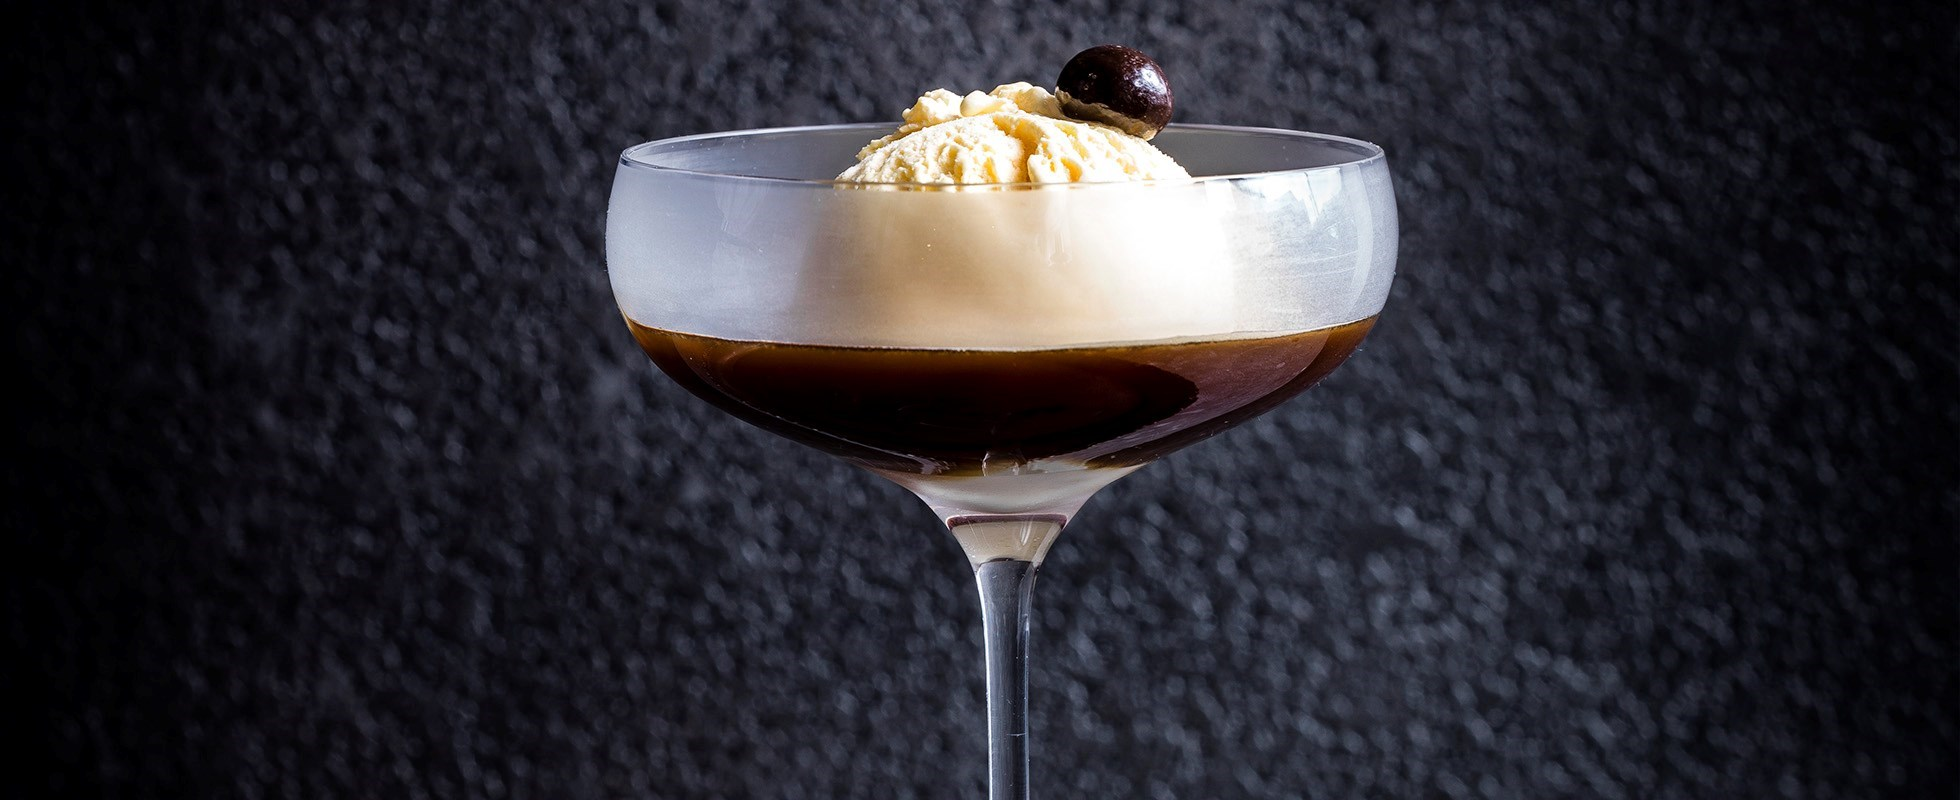 Irish coffee affogato